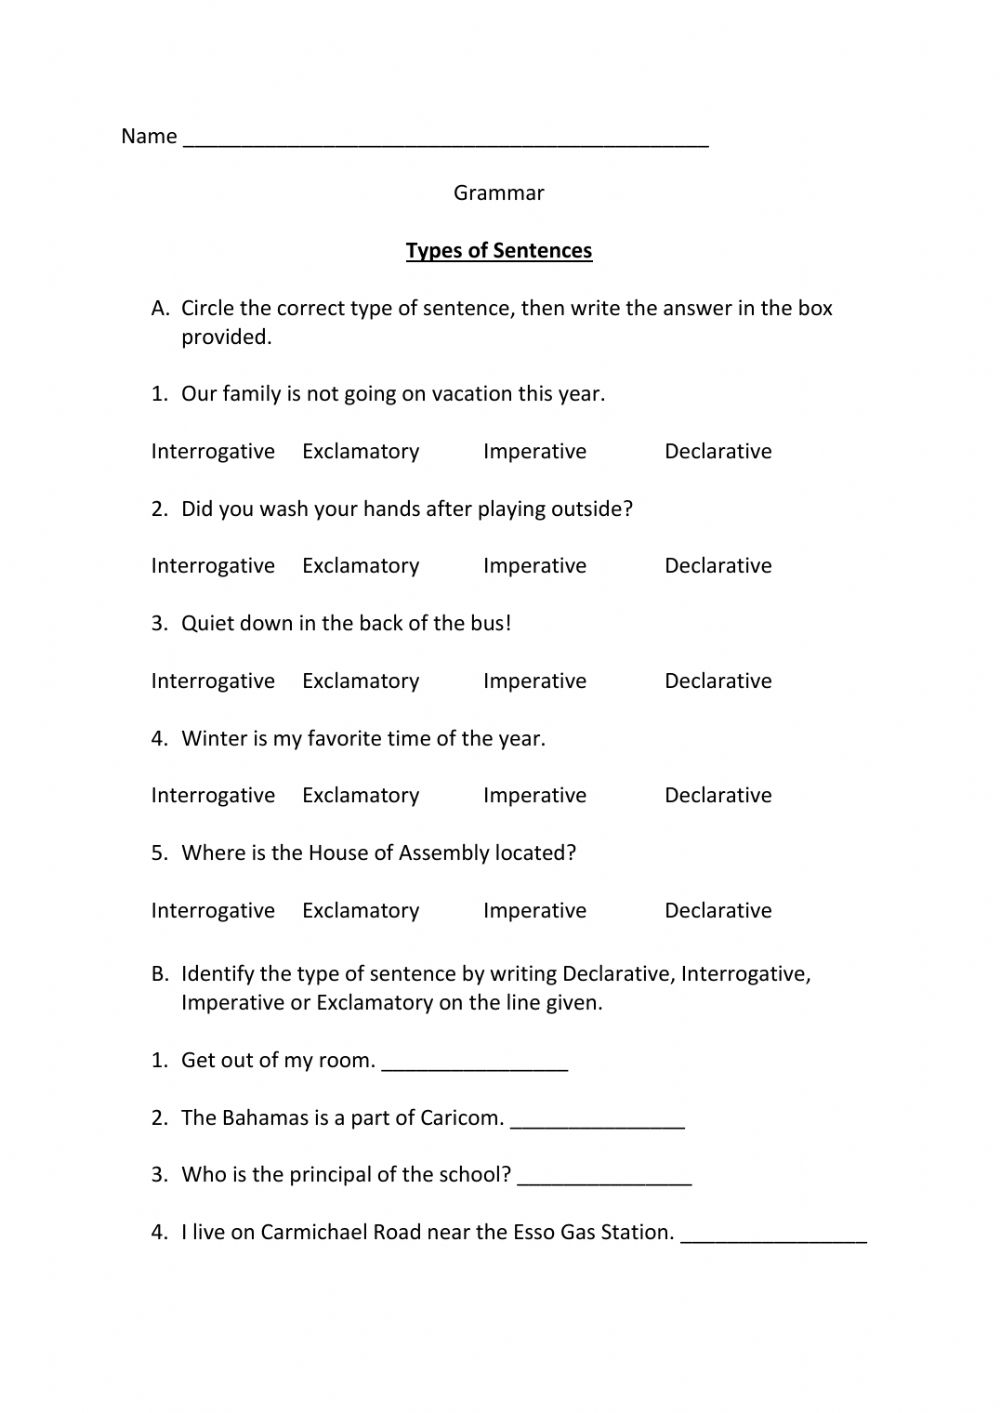 medium resolution of Type of Sentences interactive worksheet